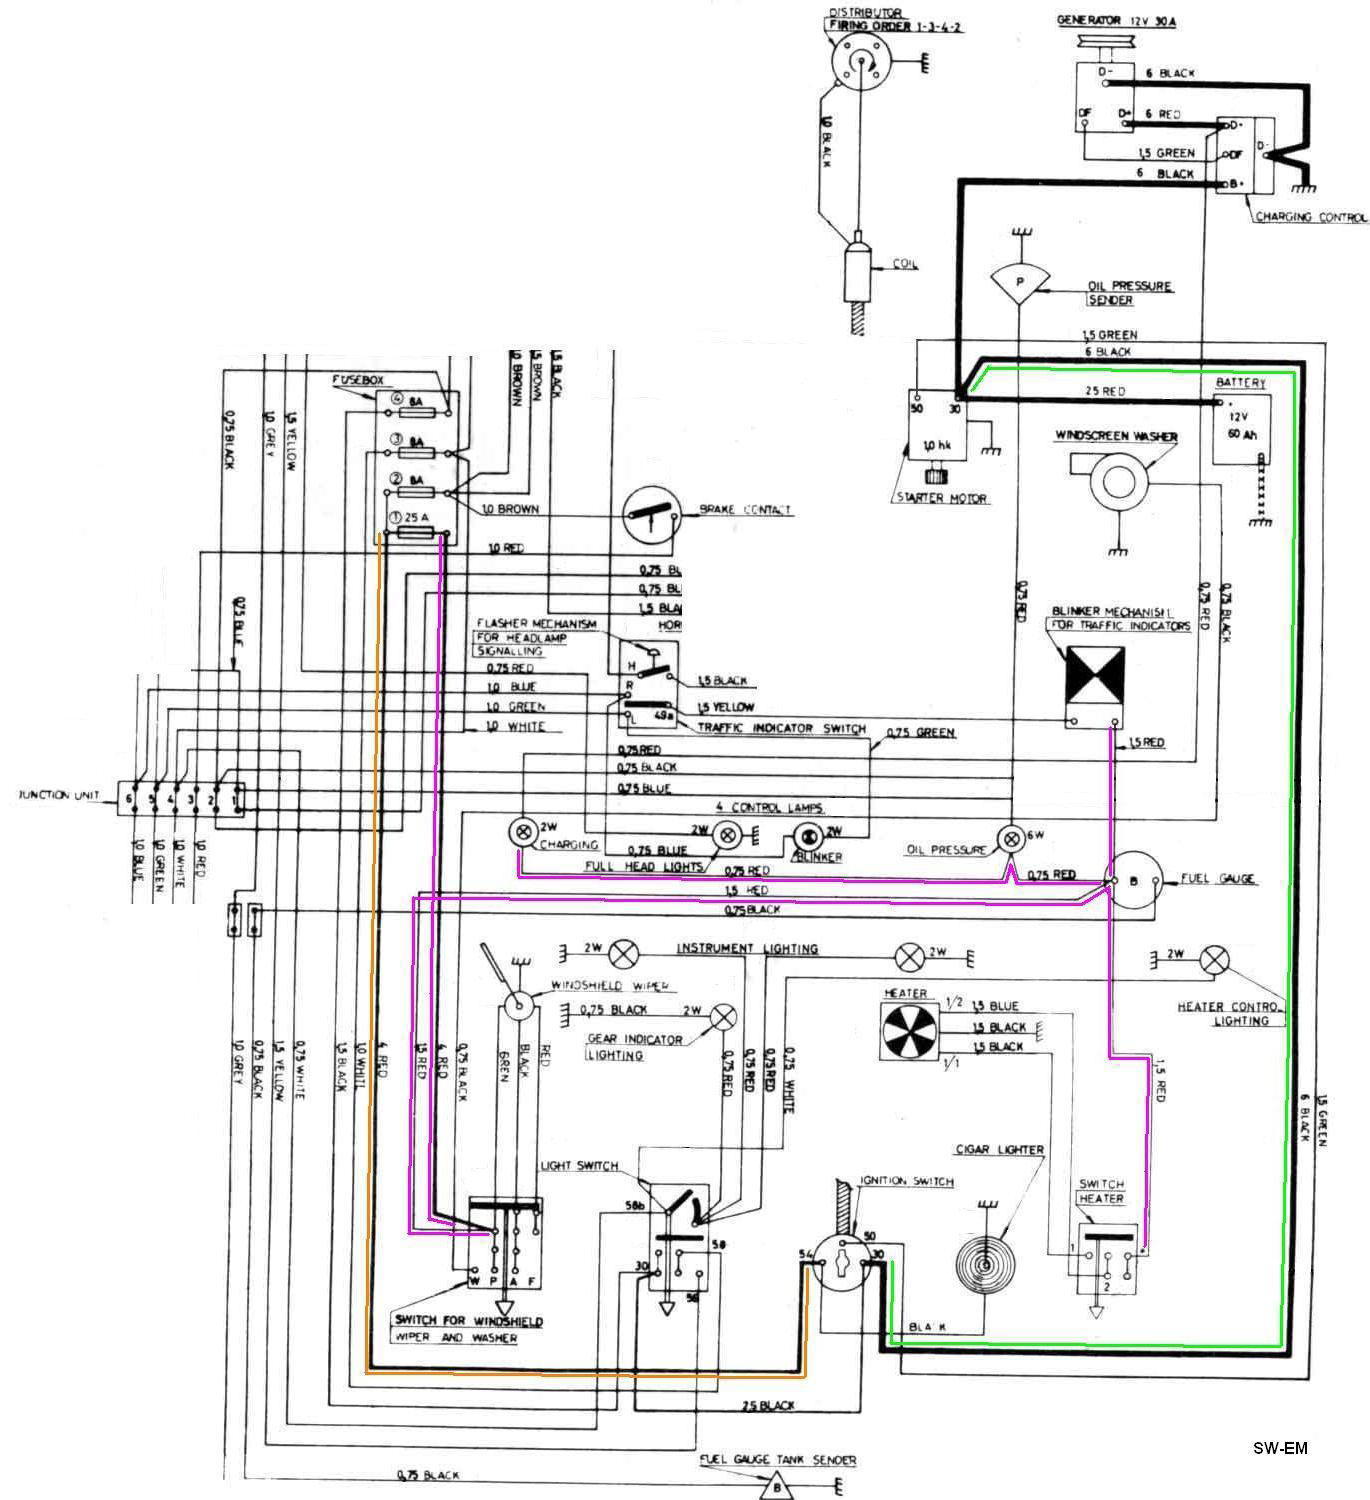 hight resolution of 1800 ignition wiring swedish vs british design volvo 850 ignition wiring diagram volvo ignition wiring diagram